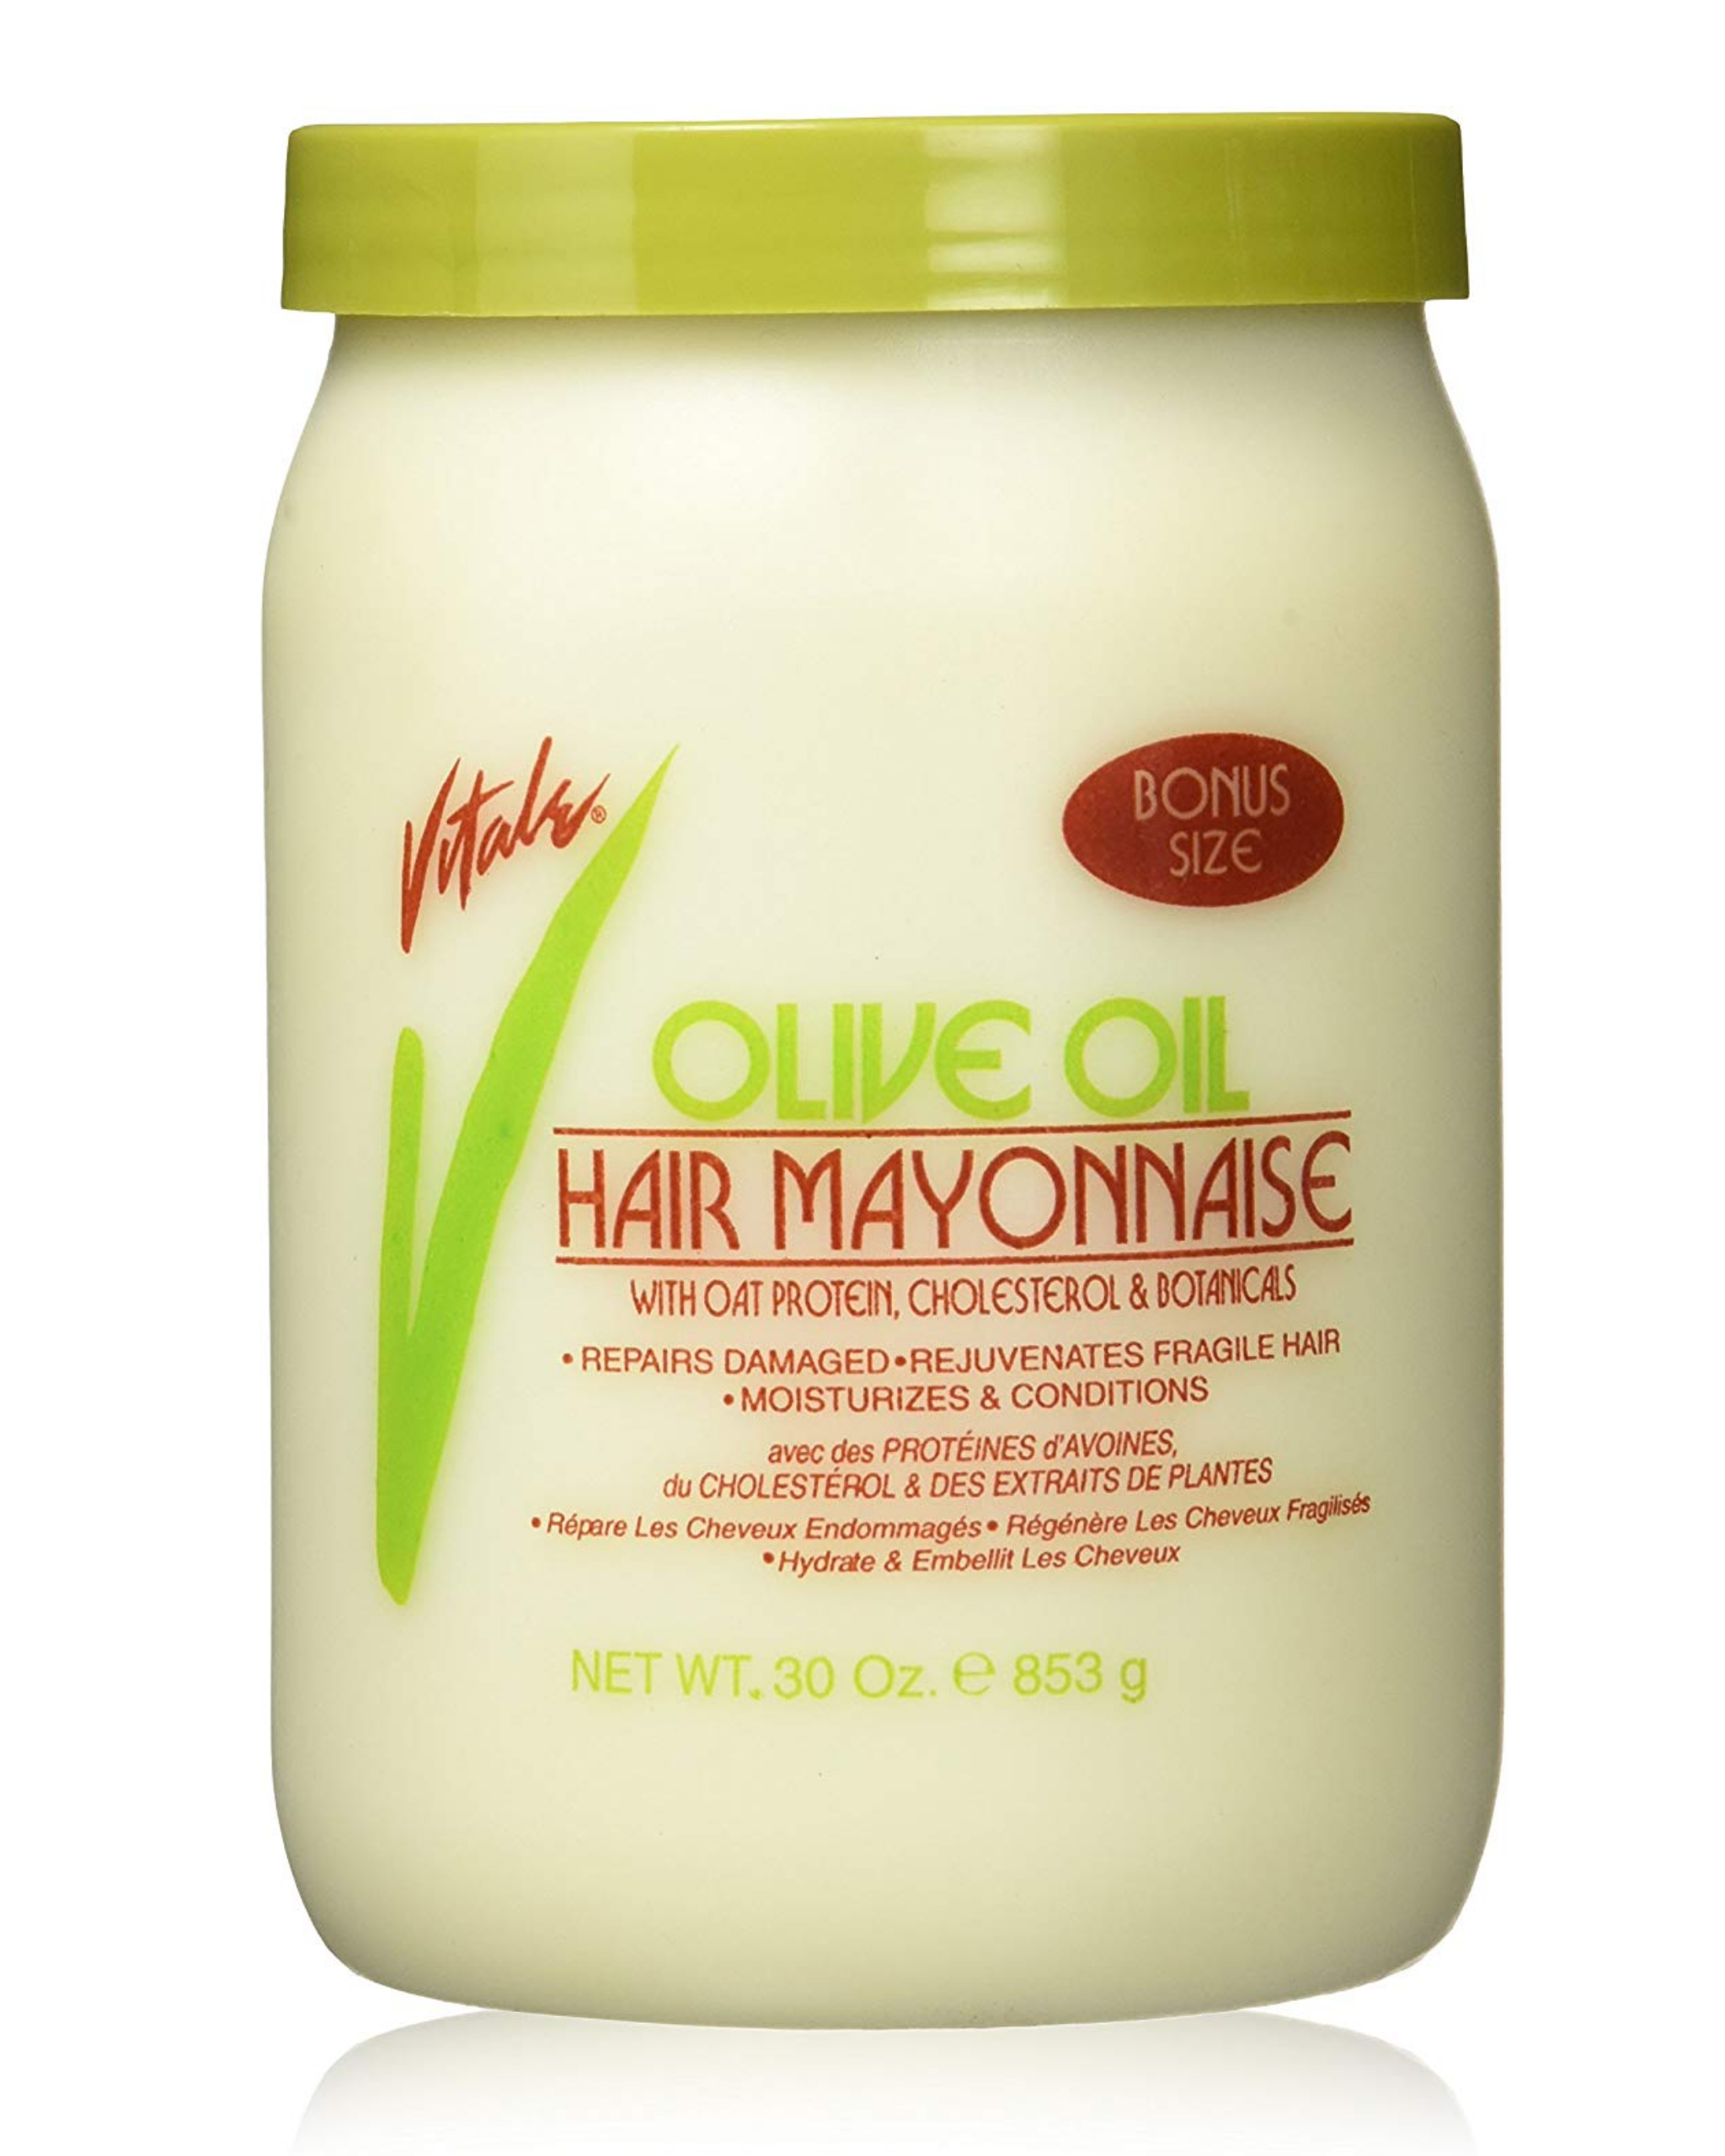 vitale olive oil hair mayonnaise 30oz (bonus size)